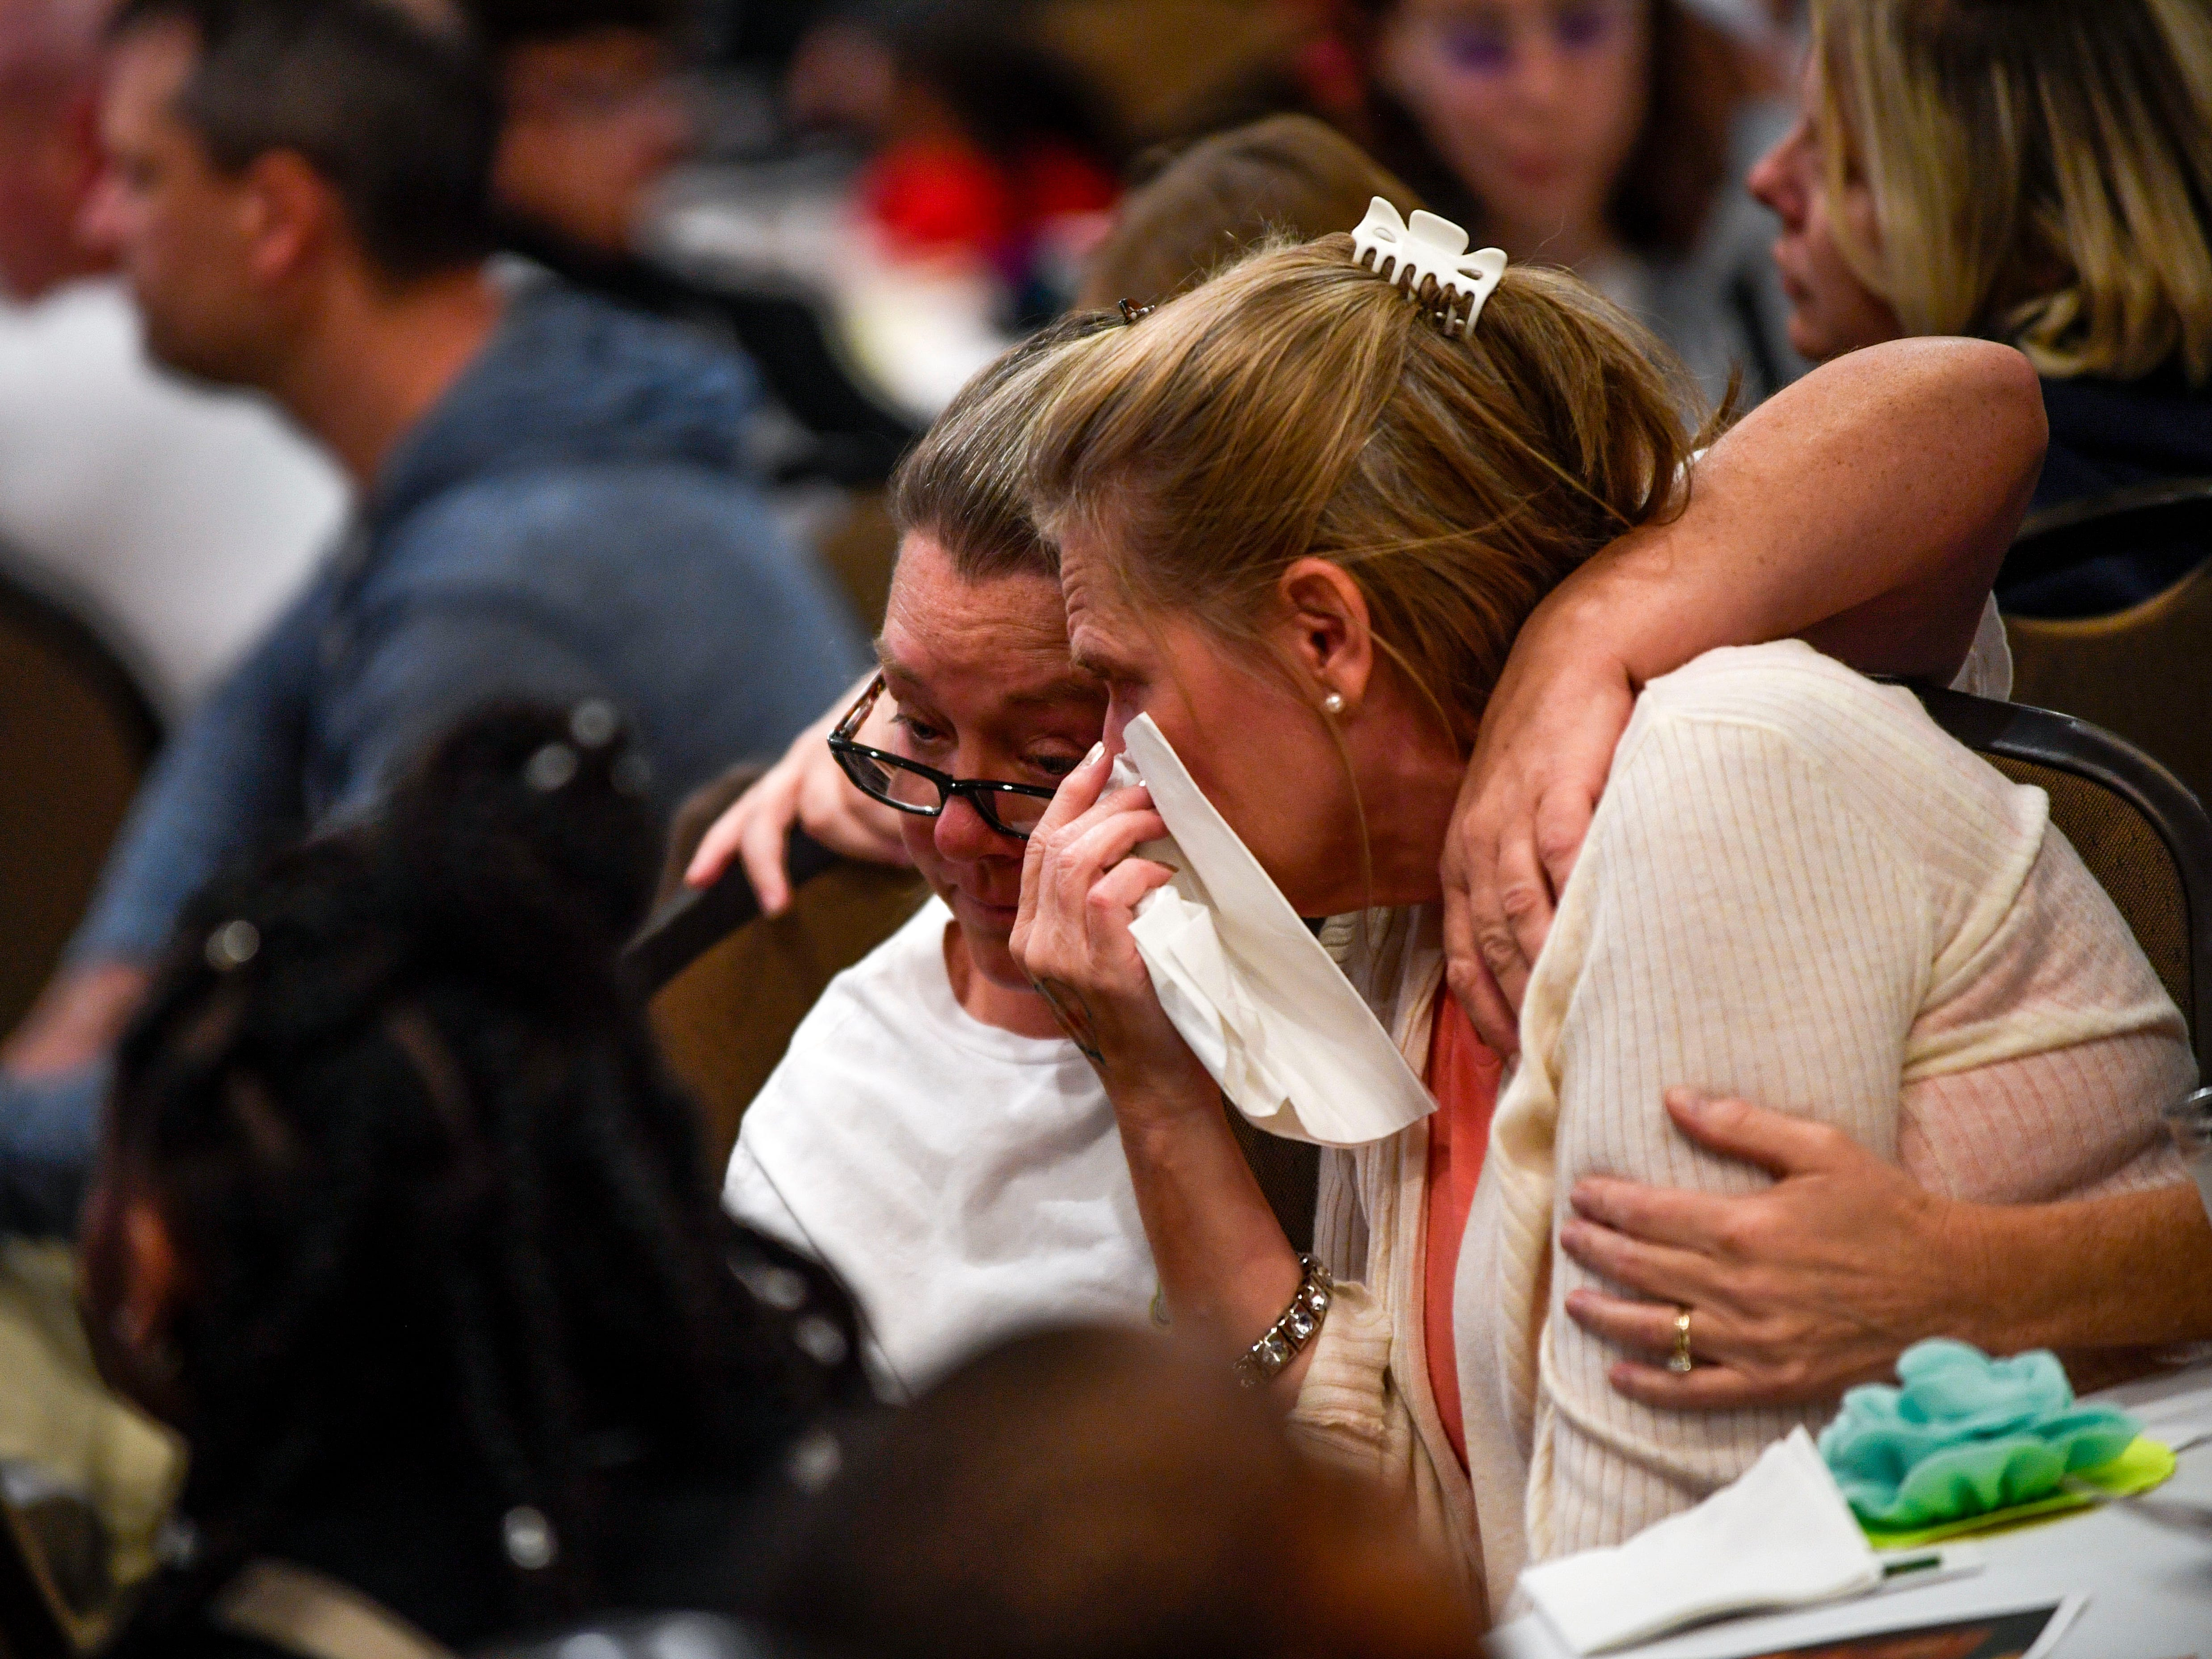 Brenda Pittman, right, is comforted by a friend of her sisters, Gina, who noticed Pittman tear up during the annual Remember Me Walk hosted at Union University in Jackson, Tenn., on Monday, Oct. 1, 2018. Pittman lost her son just weeks prior to the walk, and he was a student at Union University.